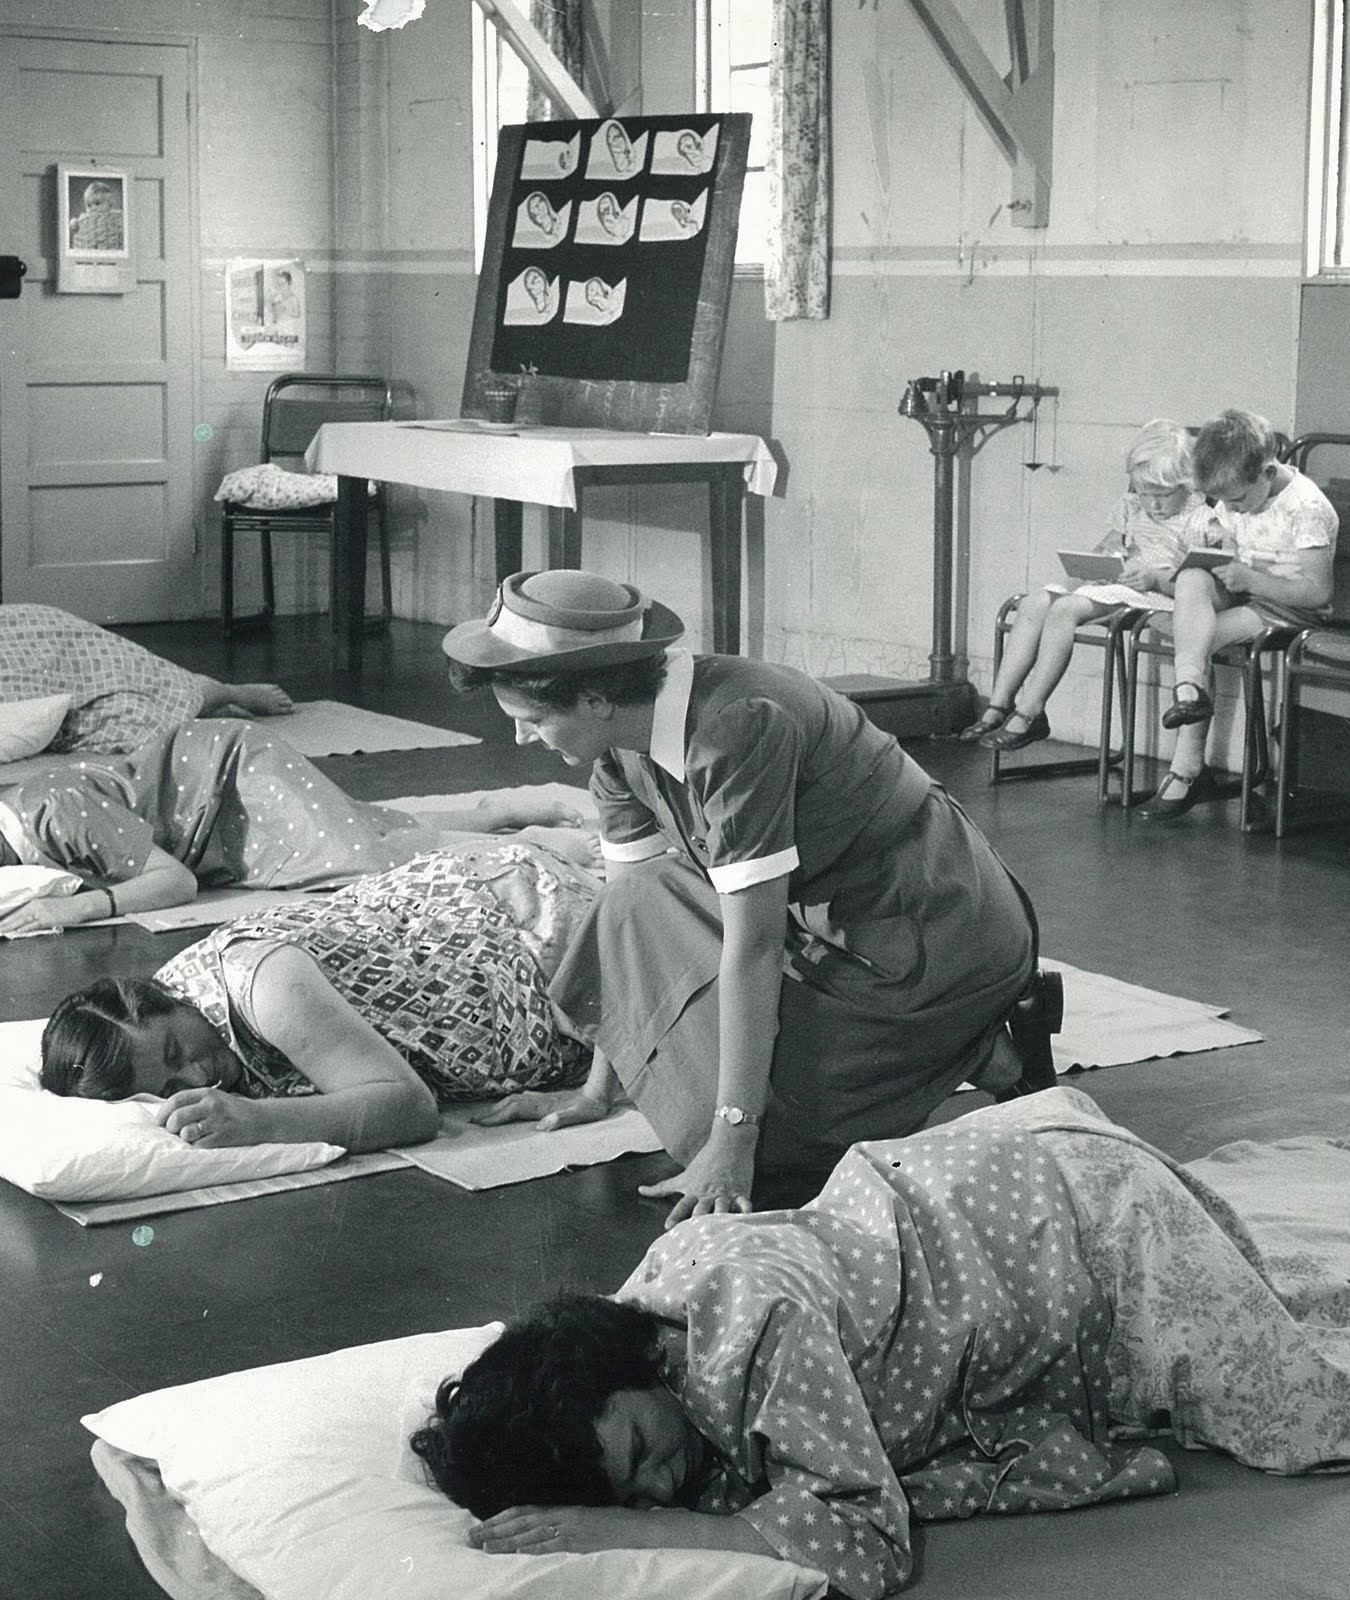 Midwife History - How Midwives Work | HowStuffWorks